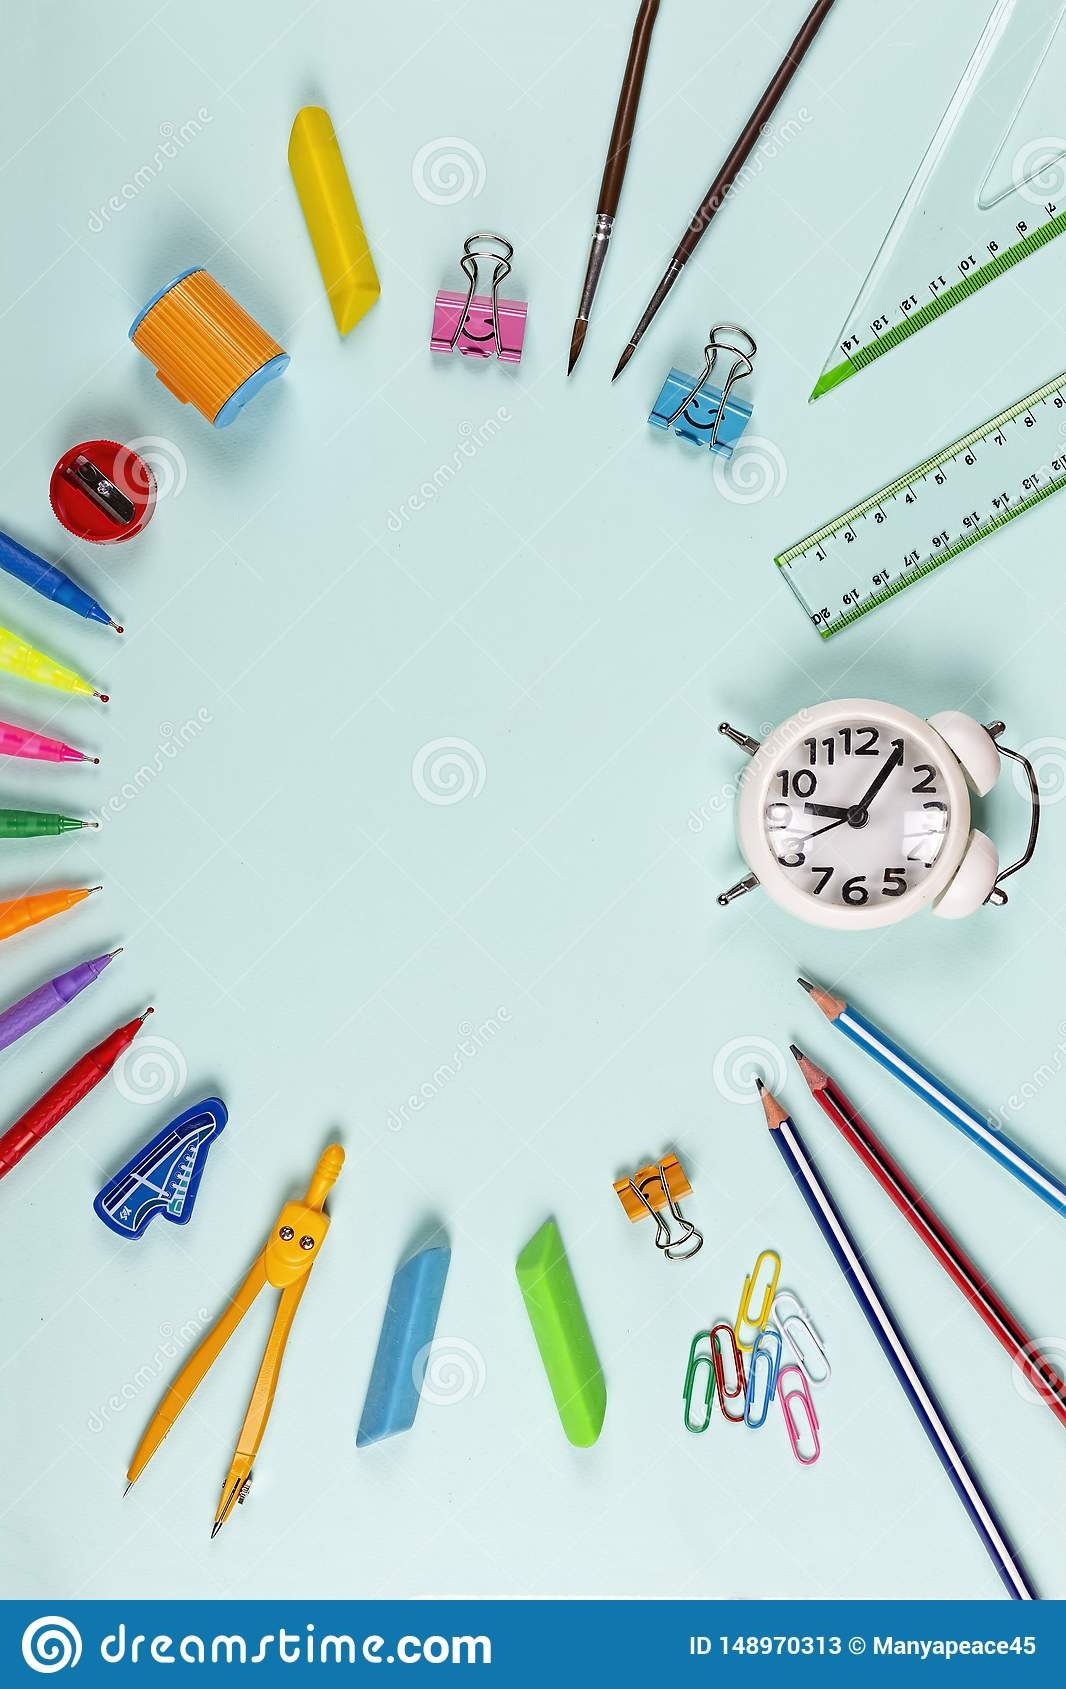 Wallpaper Clipart Cartoon Art Powerpoint Anime High School Design Colorful Stock Image Image Of Minimal Material 148970313